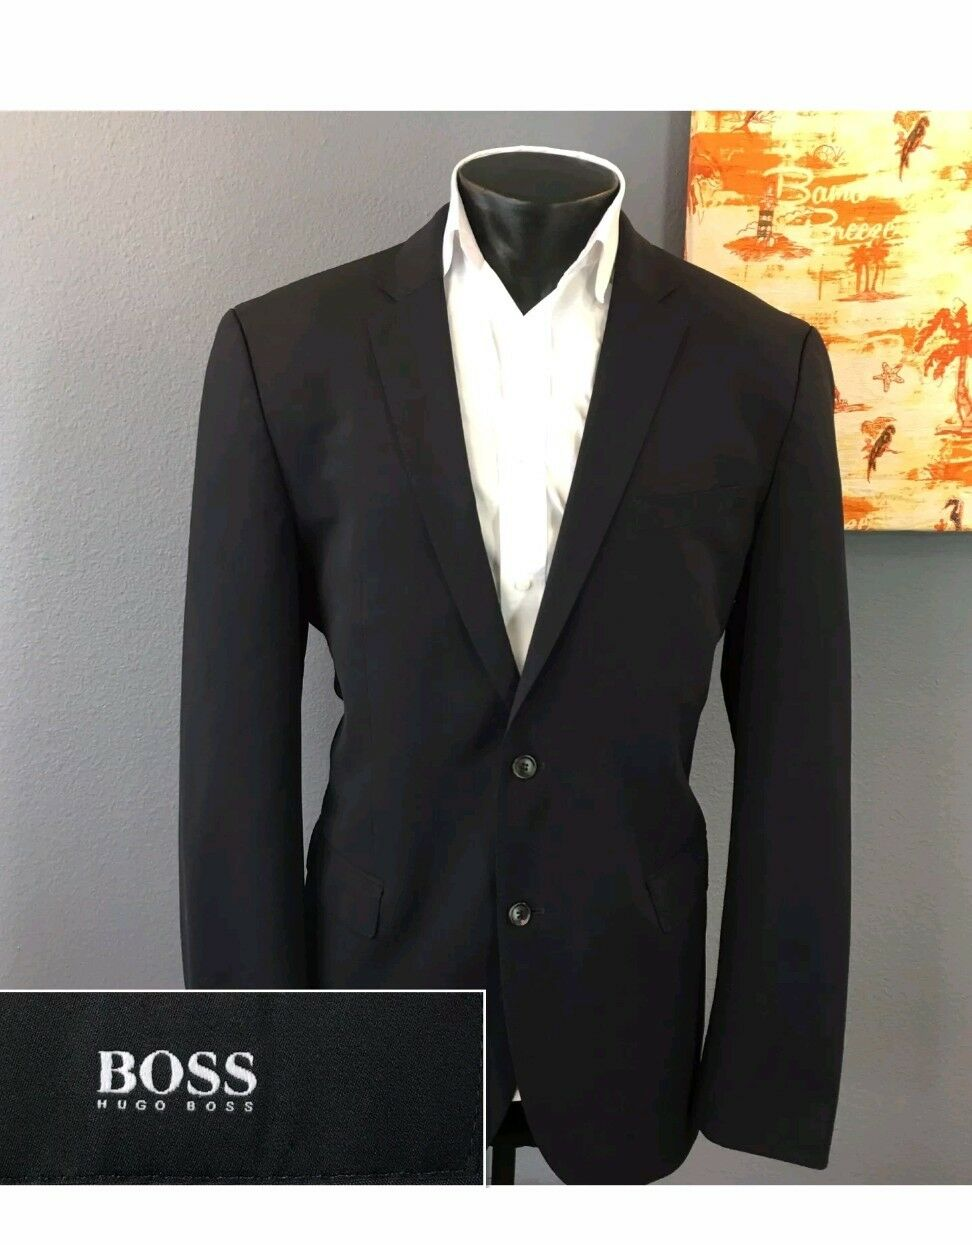 Hugo Boss The Jam75 Sharp3 Lightweight Navy Blau Blazer Sport Coat Sz 40R